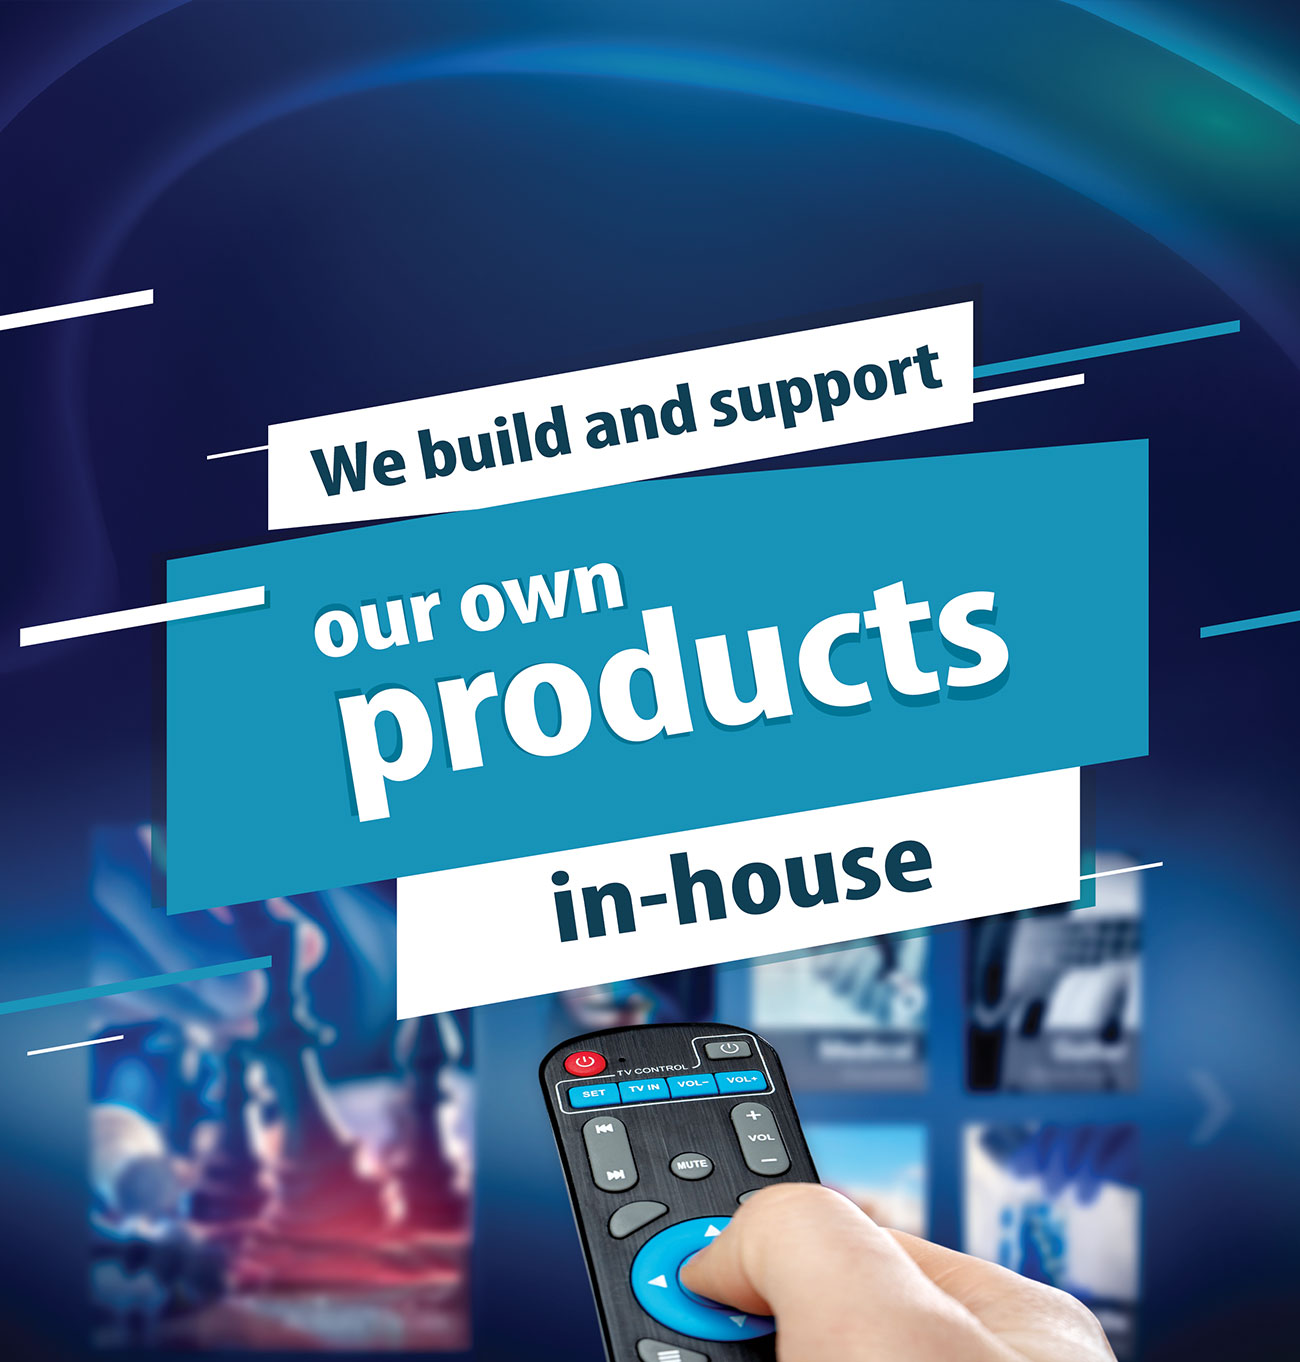 We build and support our own products in-house